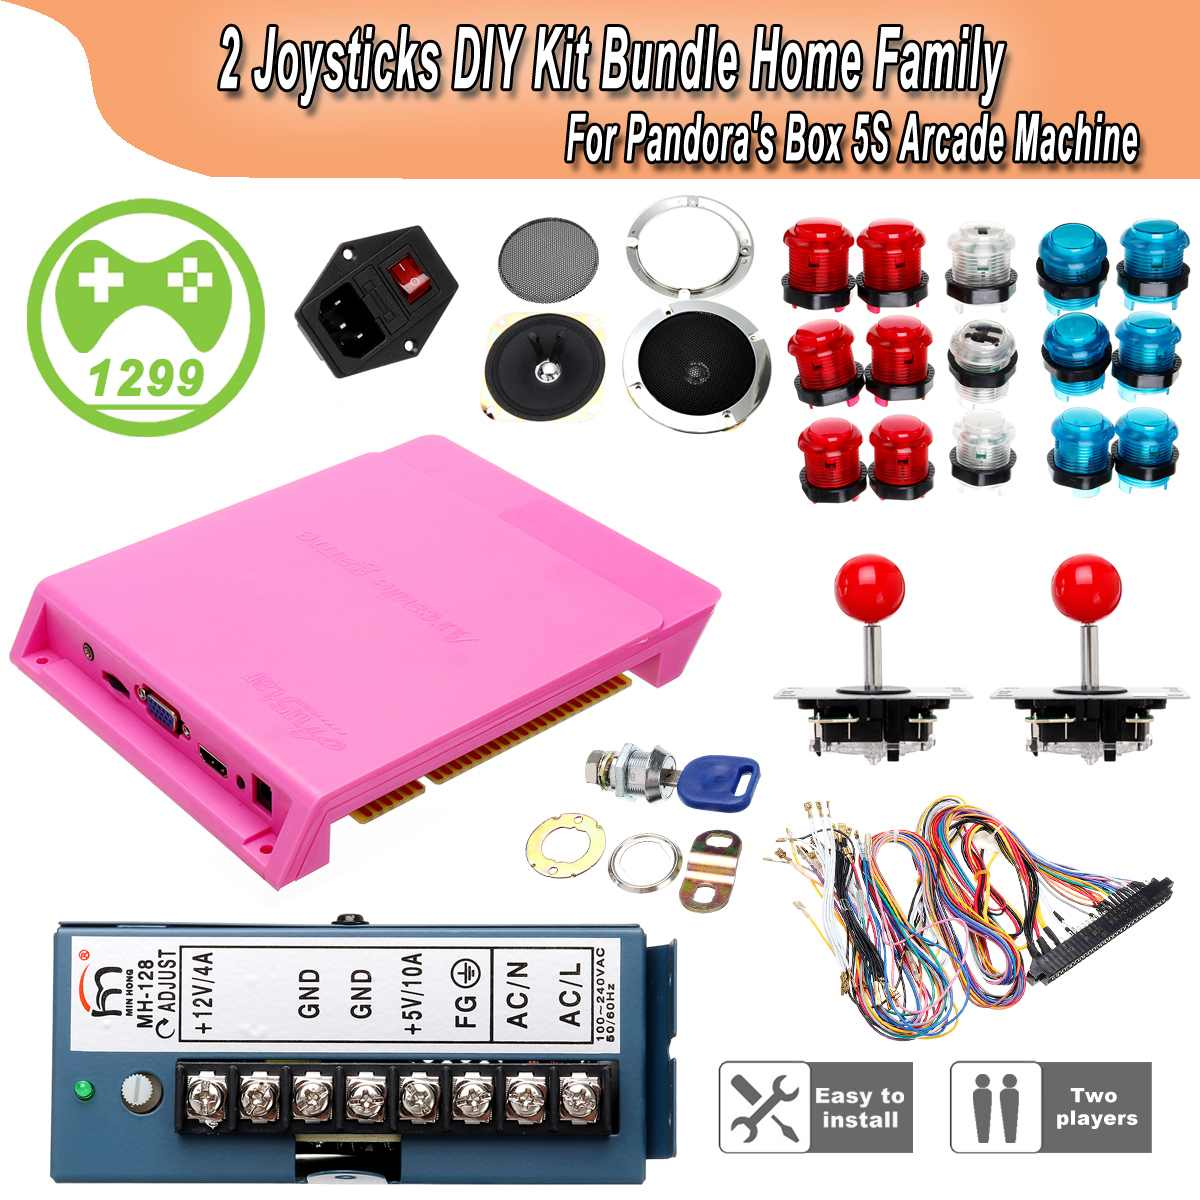 1299 Games Box Arcade DIY Game Box Arcade kit With Jamma Harness Push Button Cables Joystick Power Switch Loudspeaker1299 Games Box Arcade DIY Game Box Arcade kit With Jamma Harness Push Button Cables Joystick Power Switch Loudspeaker